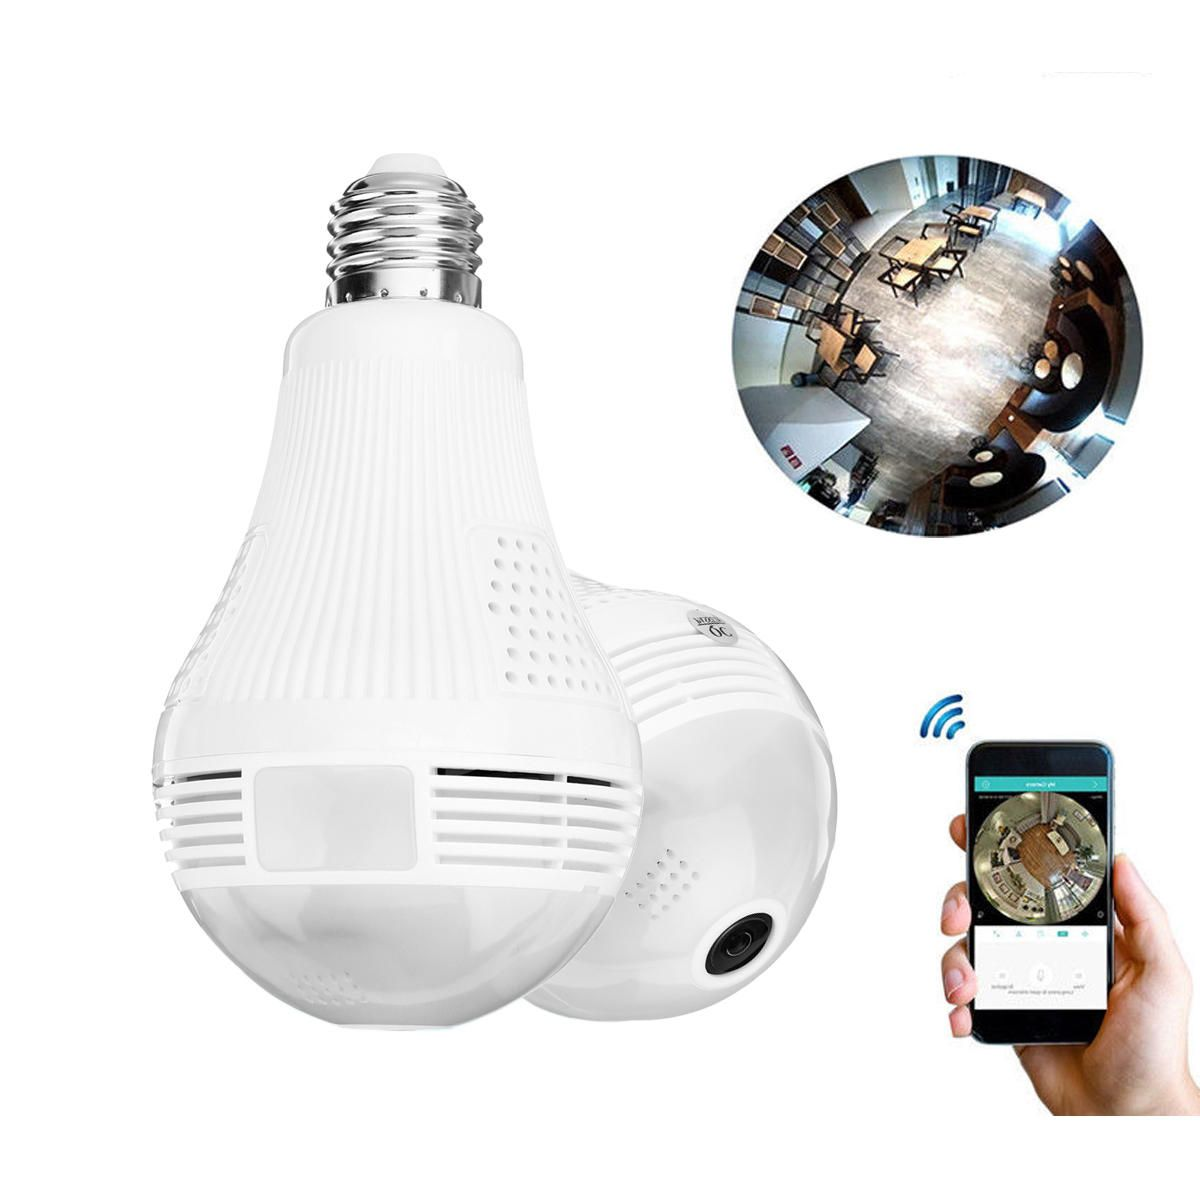 2 In 1 Panoramic 1080p 200w Wifi Camera Light Bulb Cameara Night Vision Two Way Audio Night Vision Wifi Light Bulb